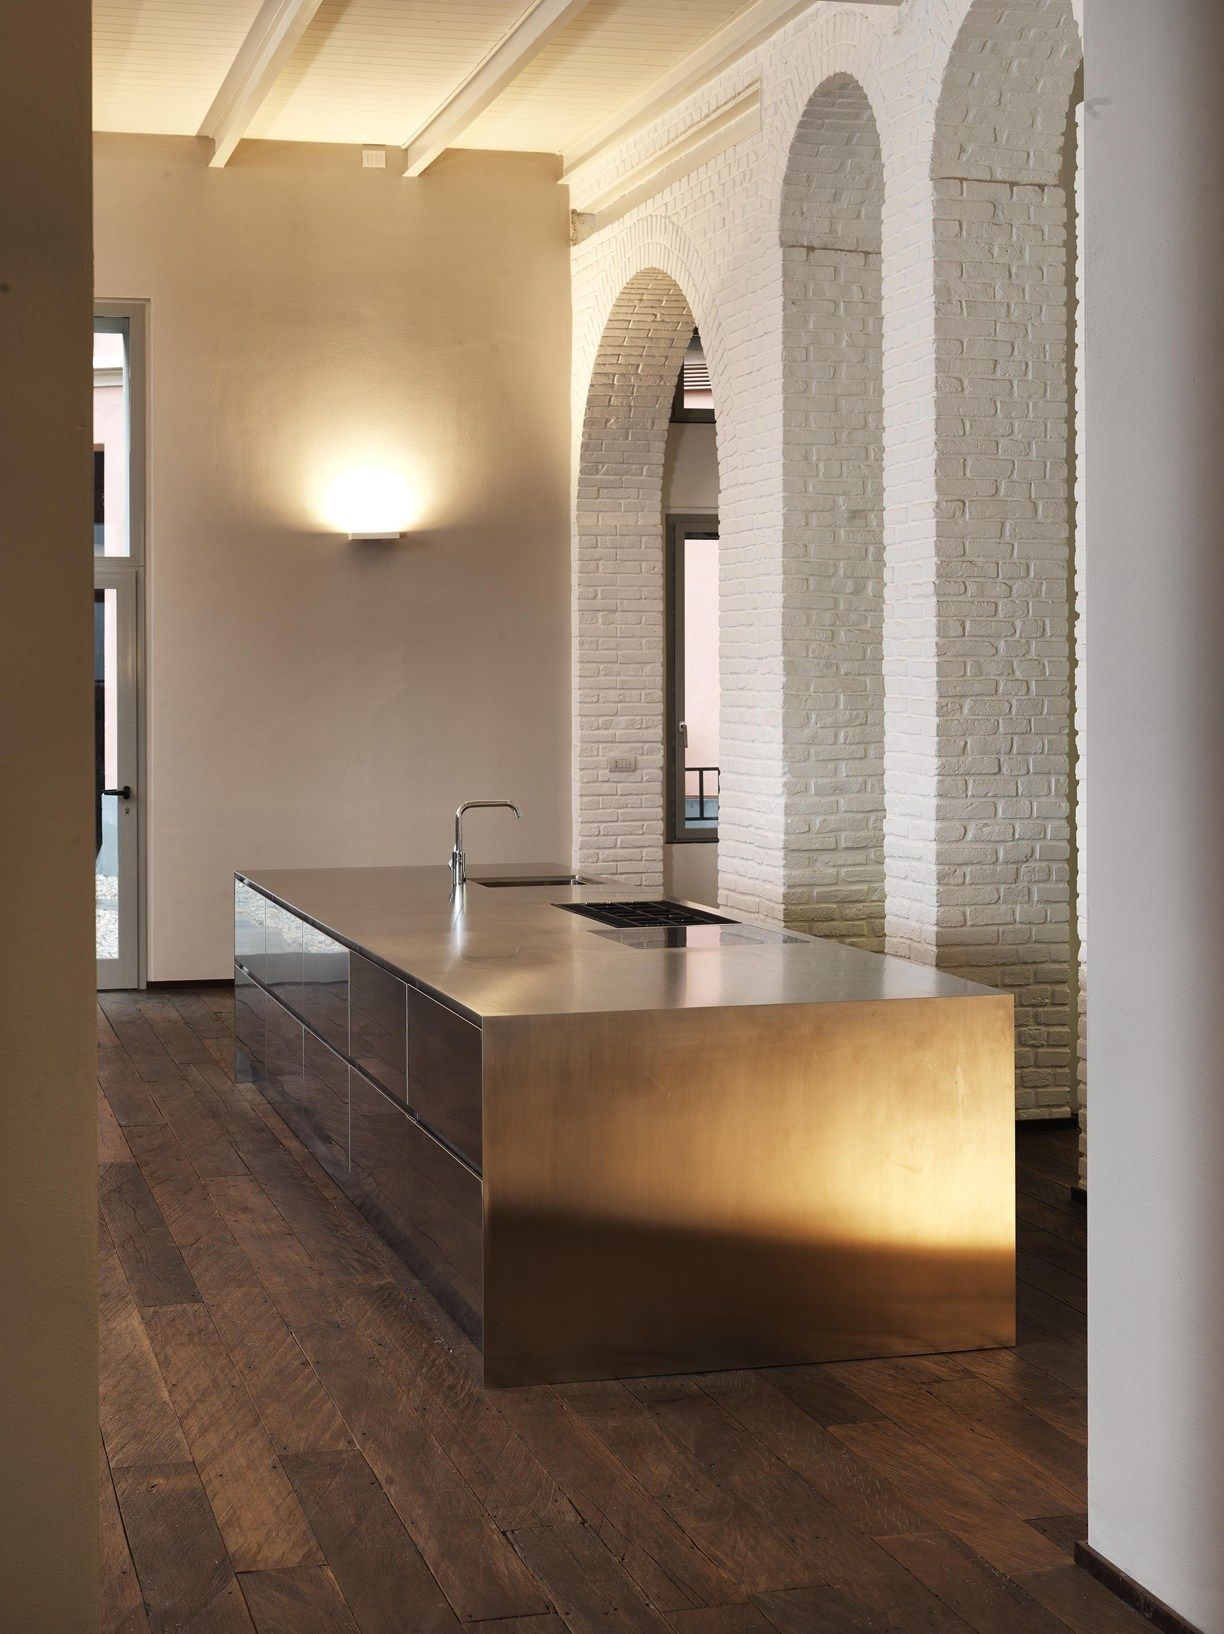 A Kitchen With An Haute Couture Soul: Abimis Presents Atelier Two New Models  And Chelsea Bagutta